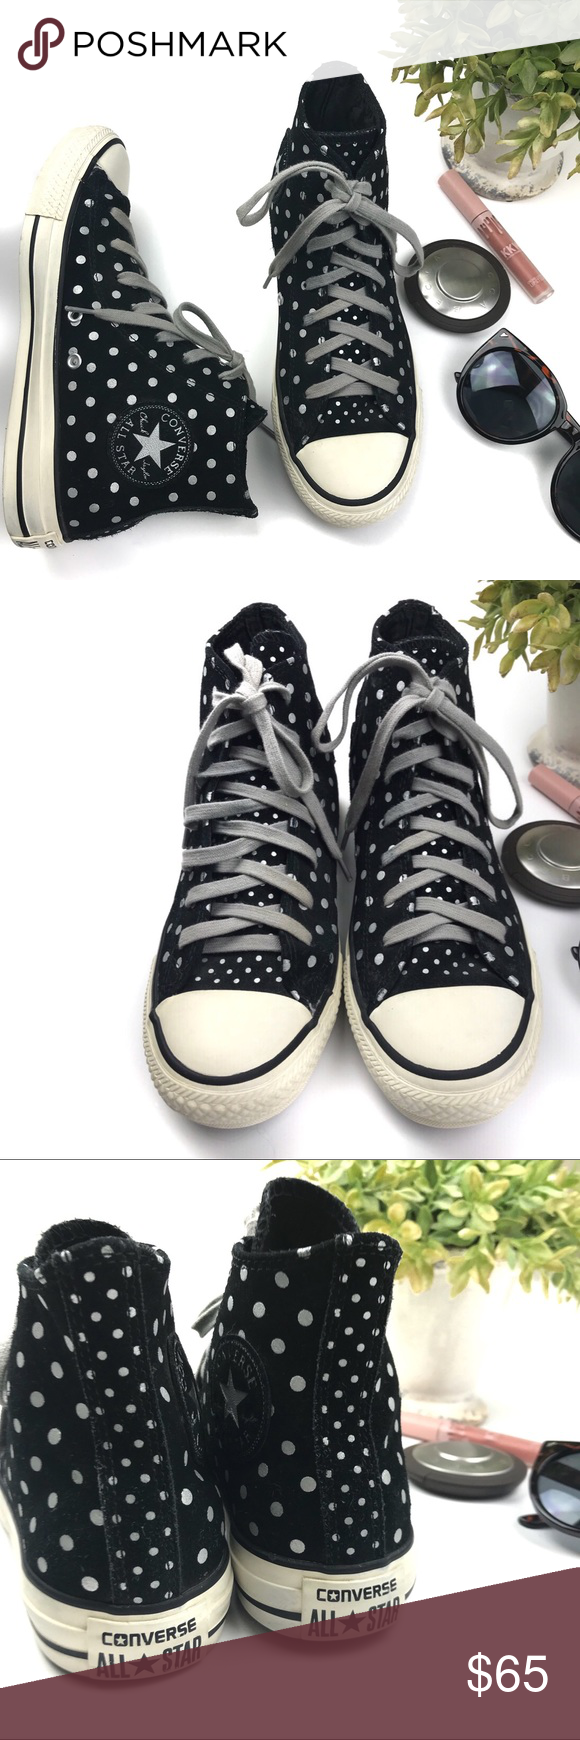 1bc5d422bae1 ✨HP✨Converse Chuck Taylor All Star Foil Polka Dots Converse Chuck Taylor  All Star Foil Polka Dots Hi Tops. Suede uppers with foil all-over foil ...